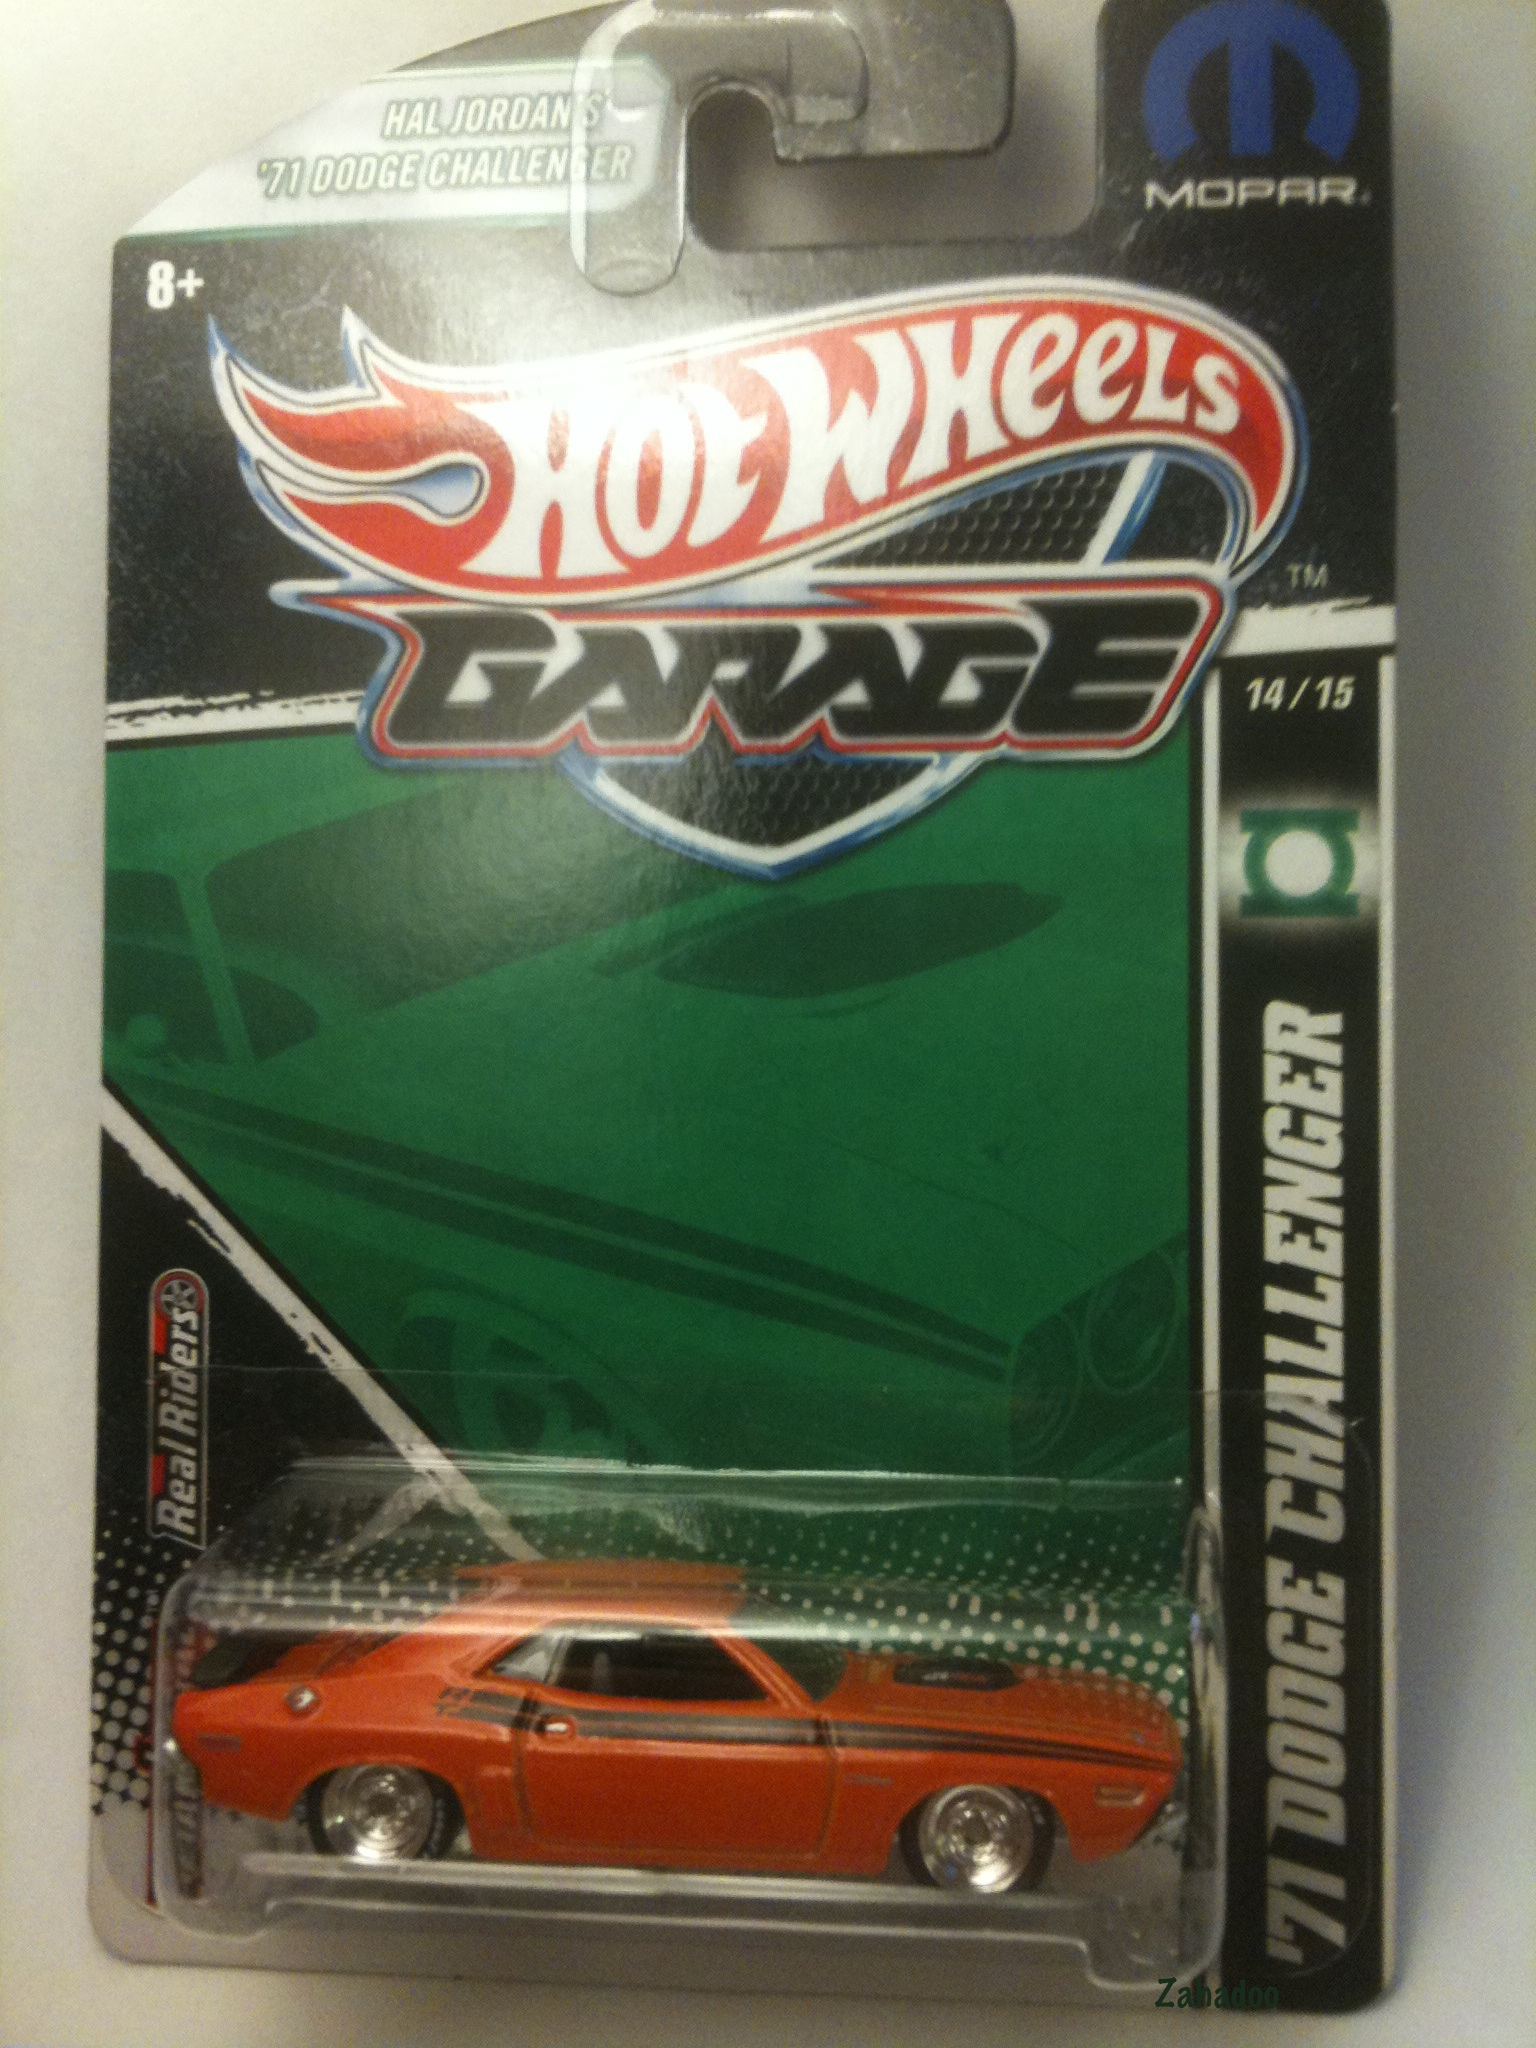 2011 hot wheels garage mopar hal jordan 1971 dodge challenger green lantern full card view jpg